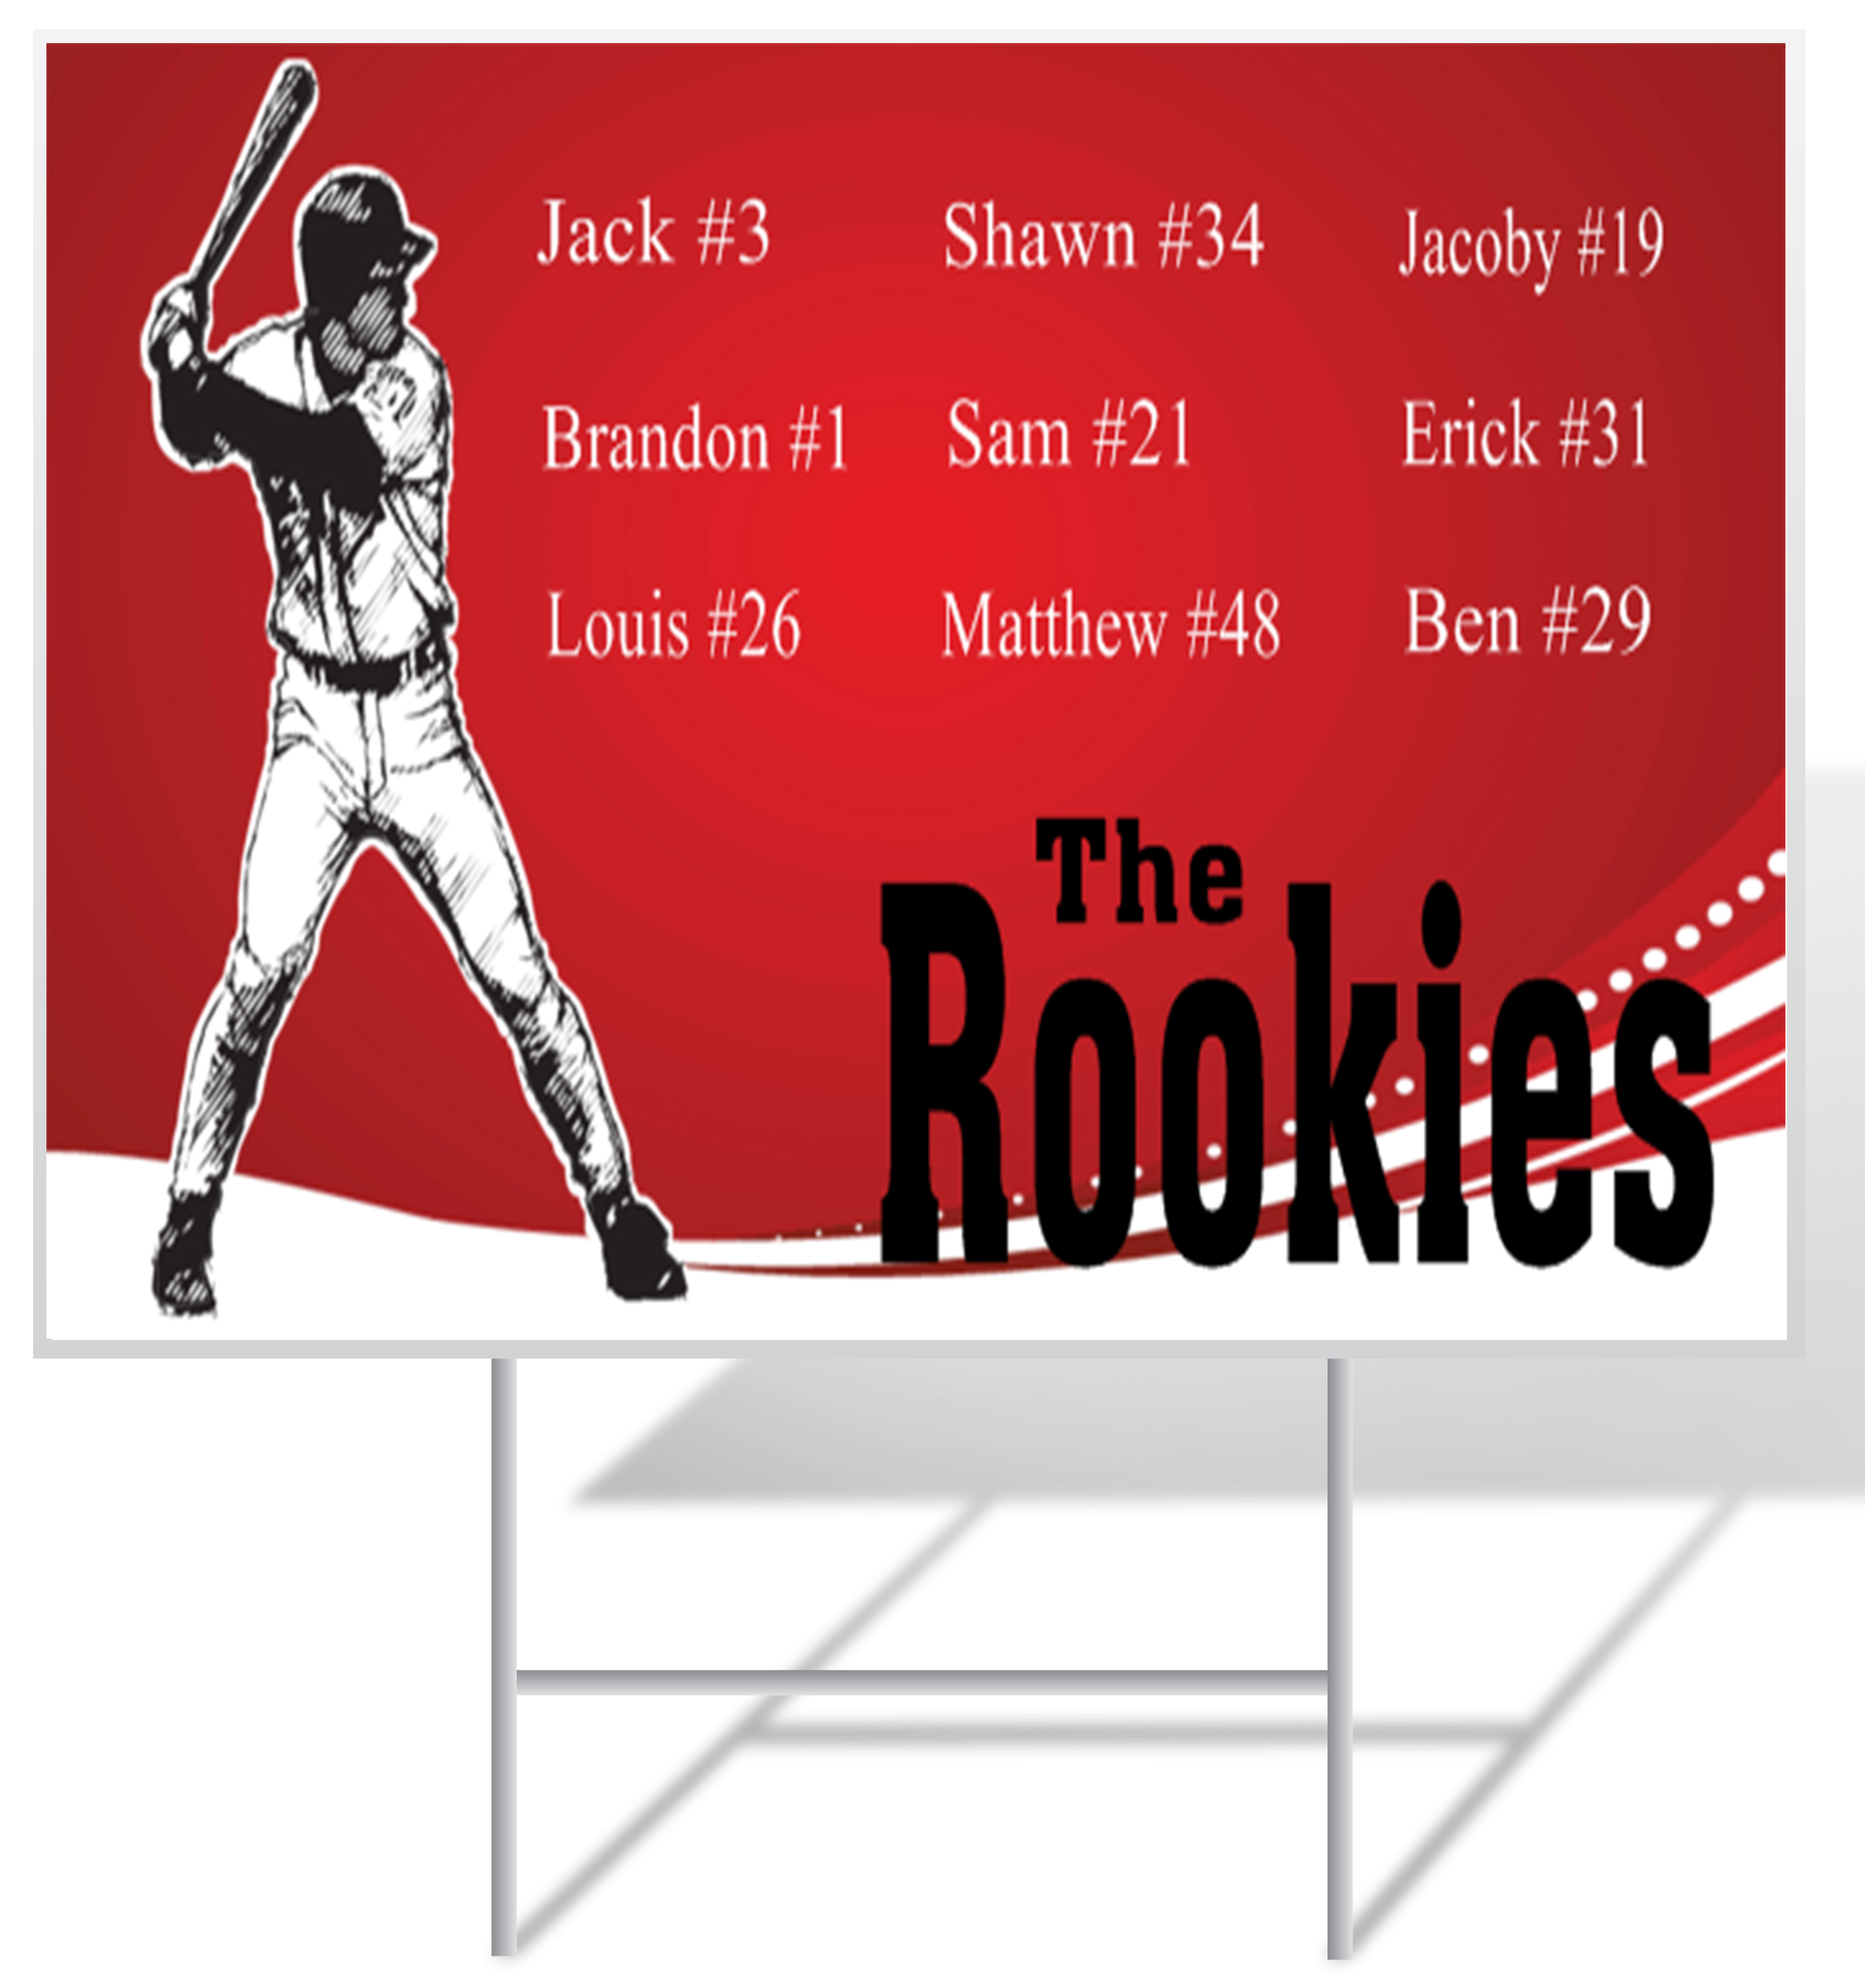 Baseball Advertising Lawn Sign Example | LawnSigns.com